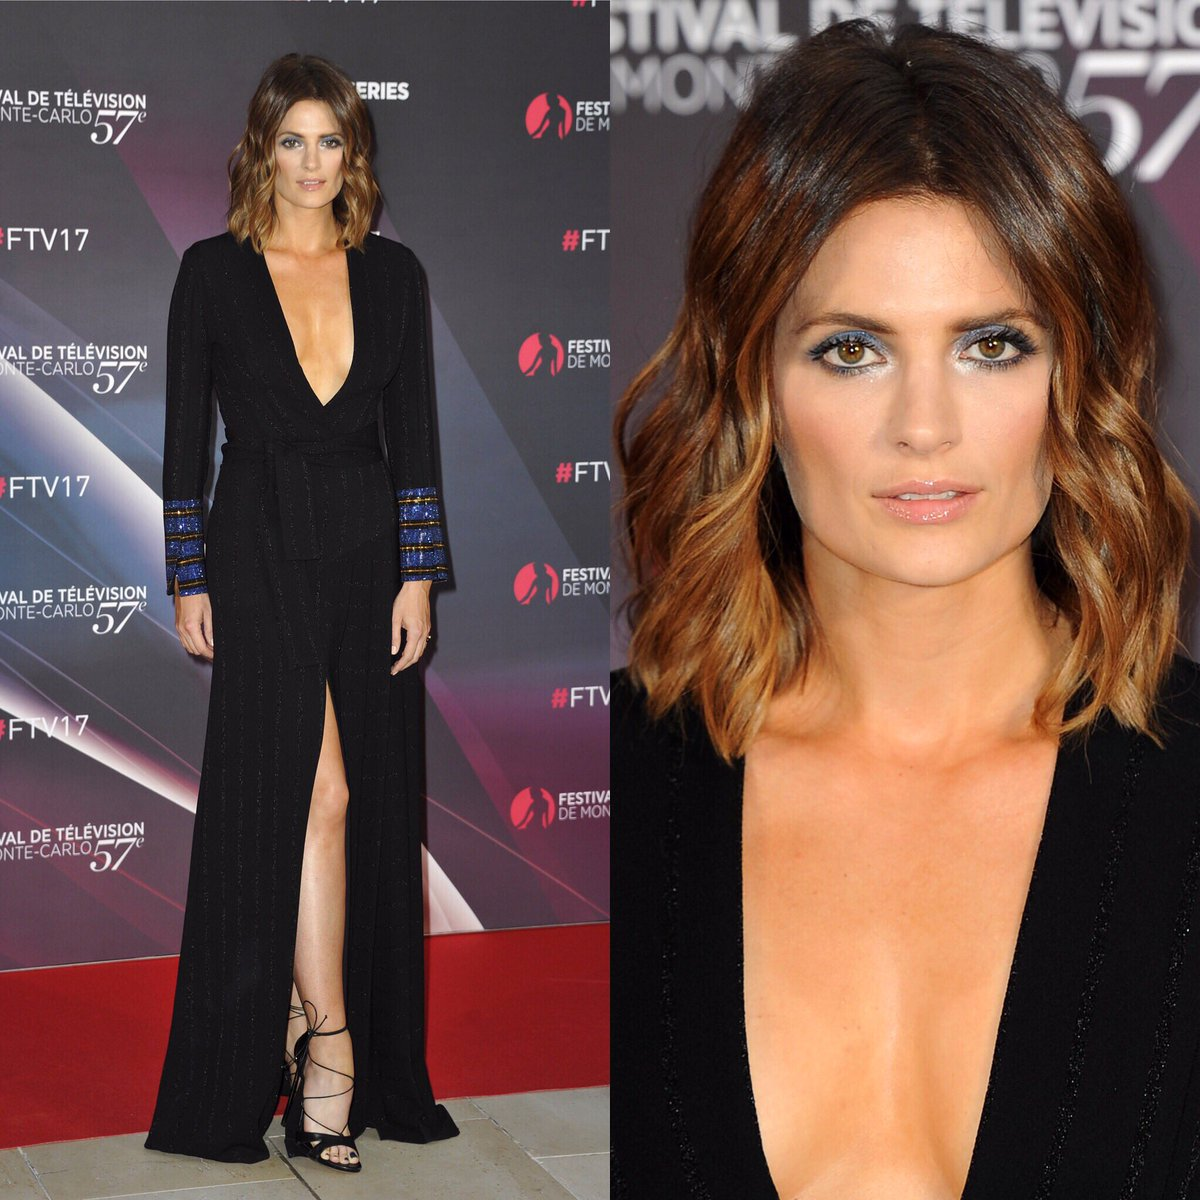 This @marcodevincenzo gown was perfect for @Stana_Katic. Classy, elegant, and sexy, yet bold and fearless, just like her!  #Absentia <br>http://pic.twitter.com/60u8x0UzwN